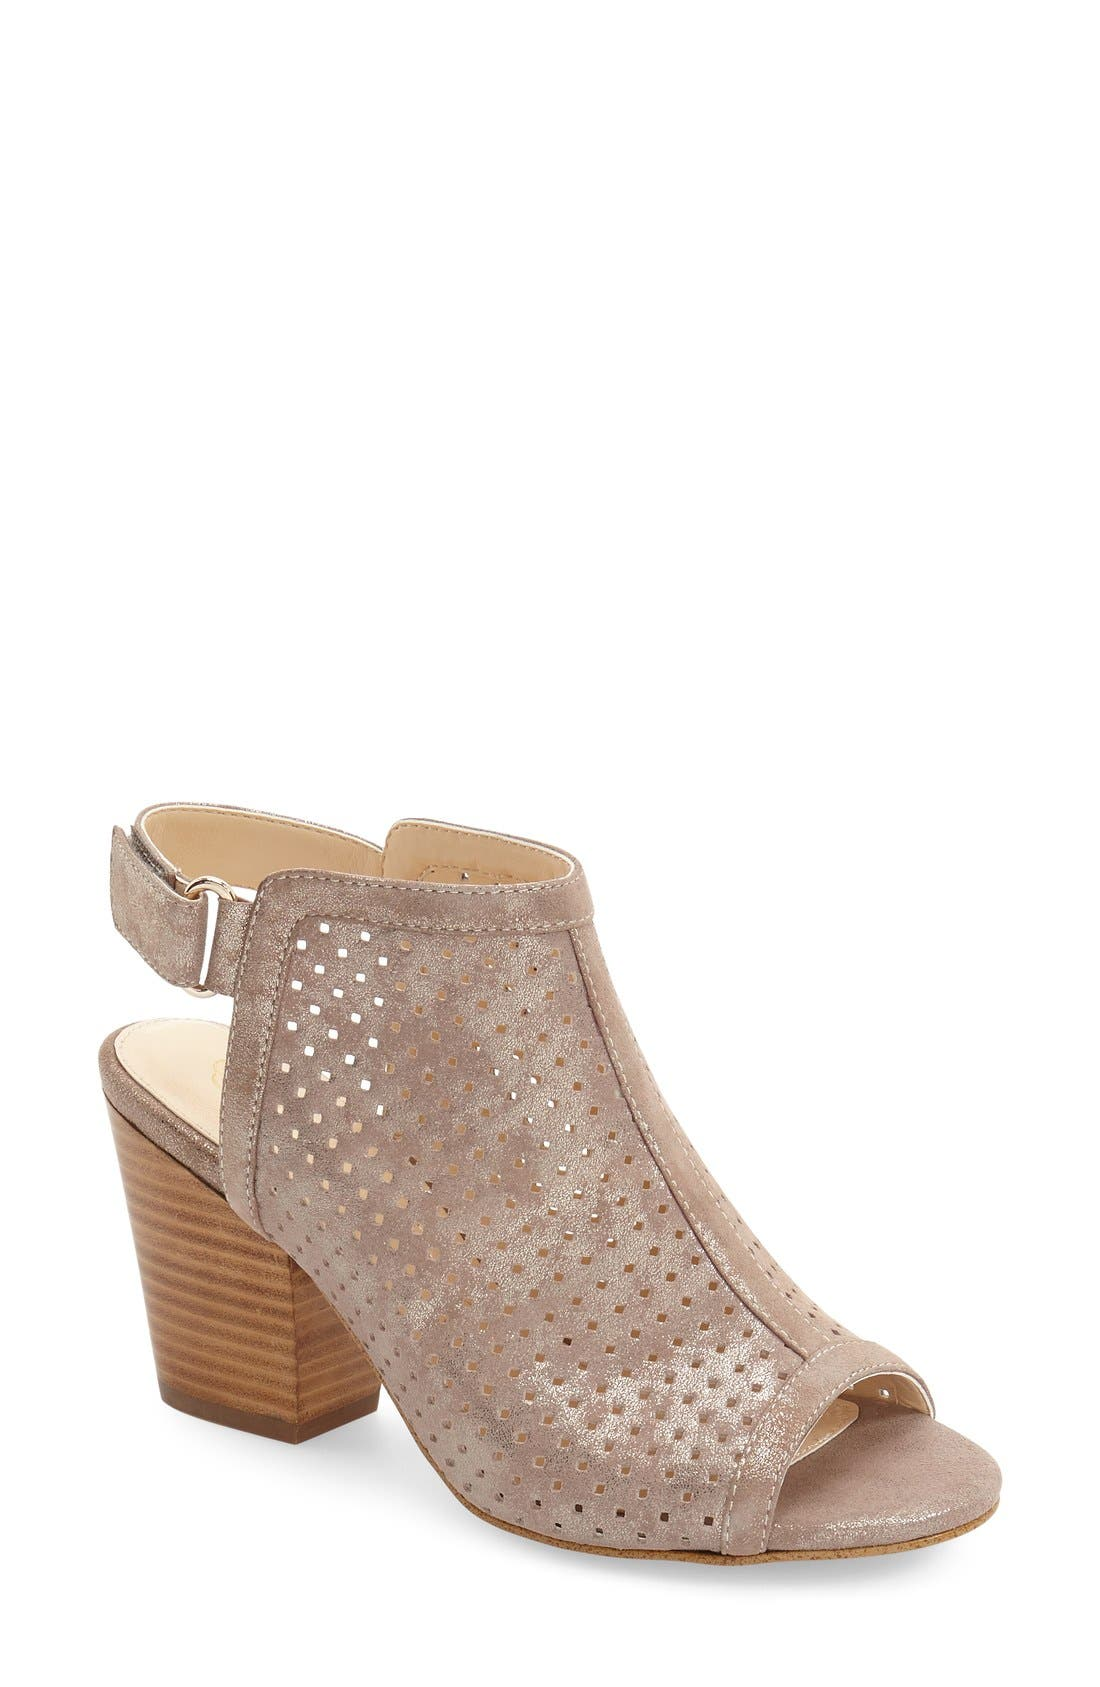 'Lora' Perforated Open-Toe Bootie Sandal,                             Main thumbnail 1, color,                             040